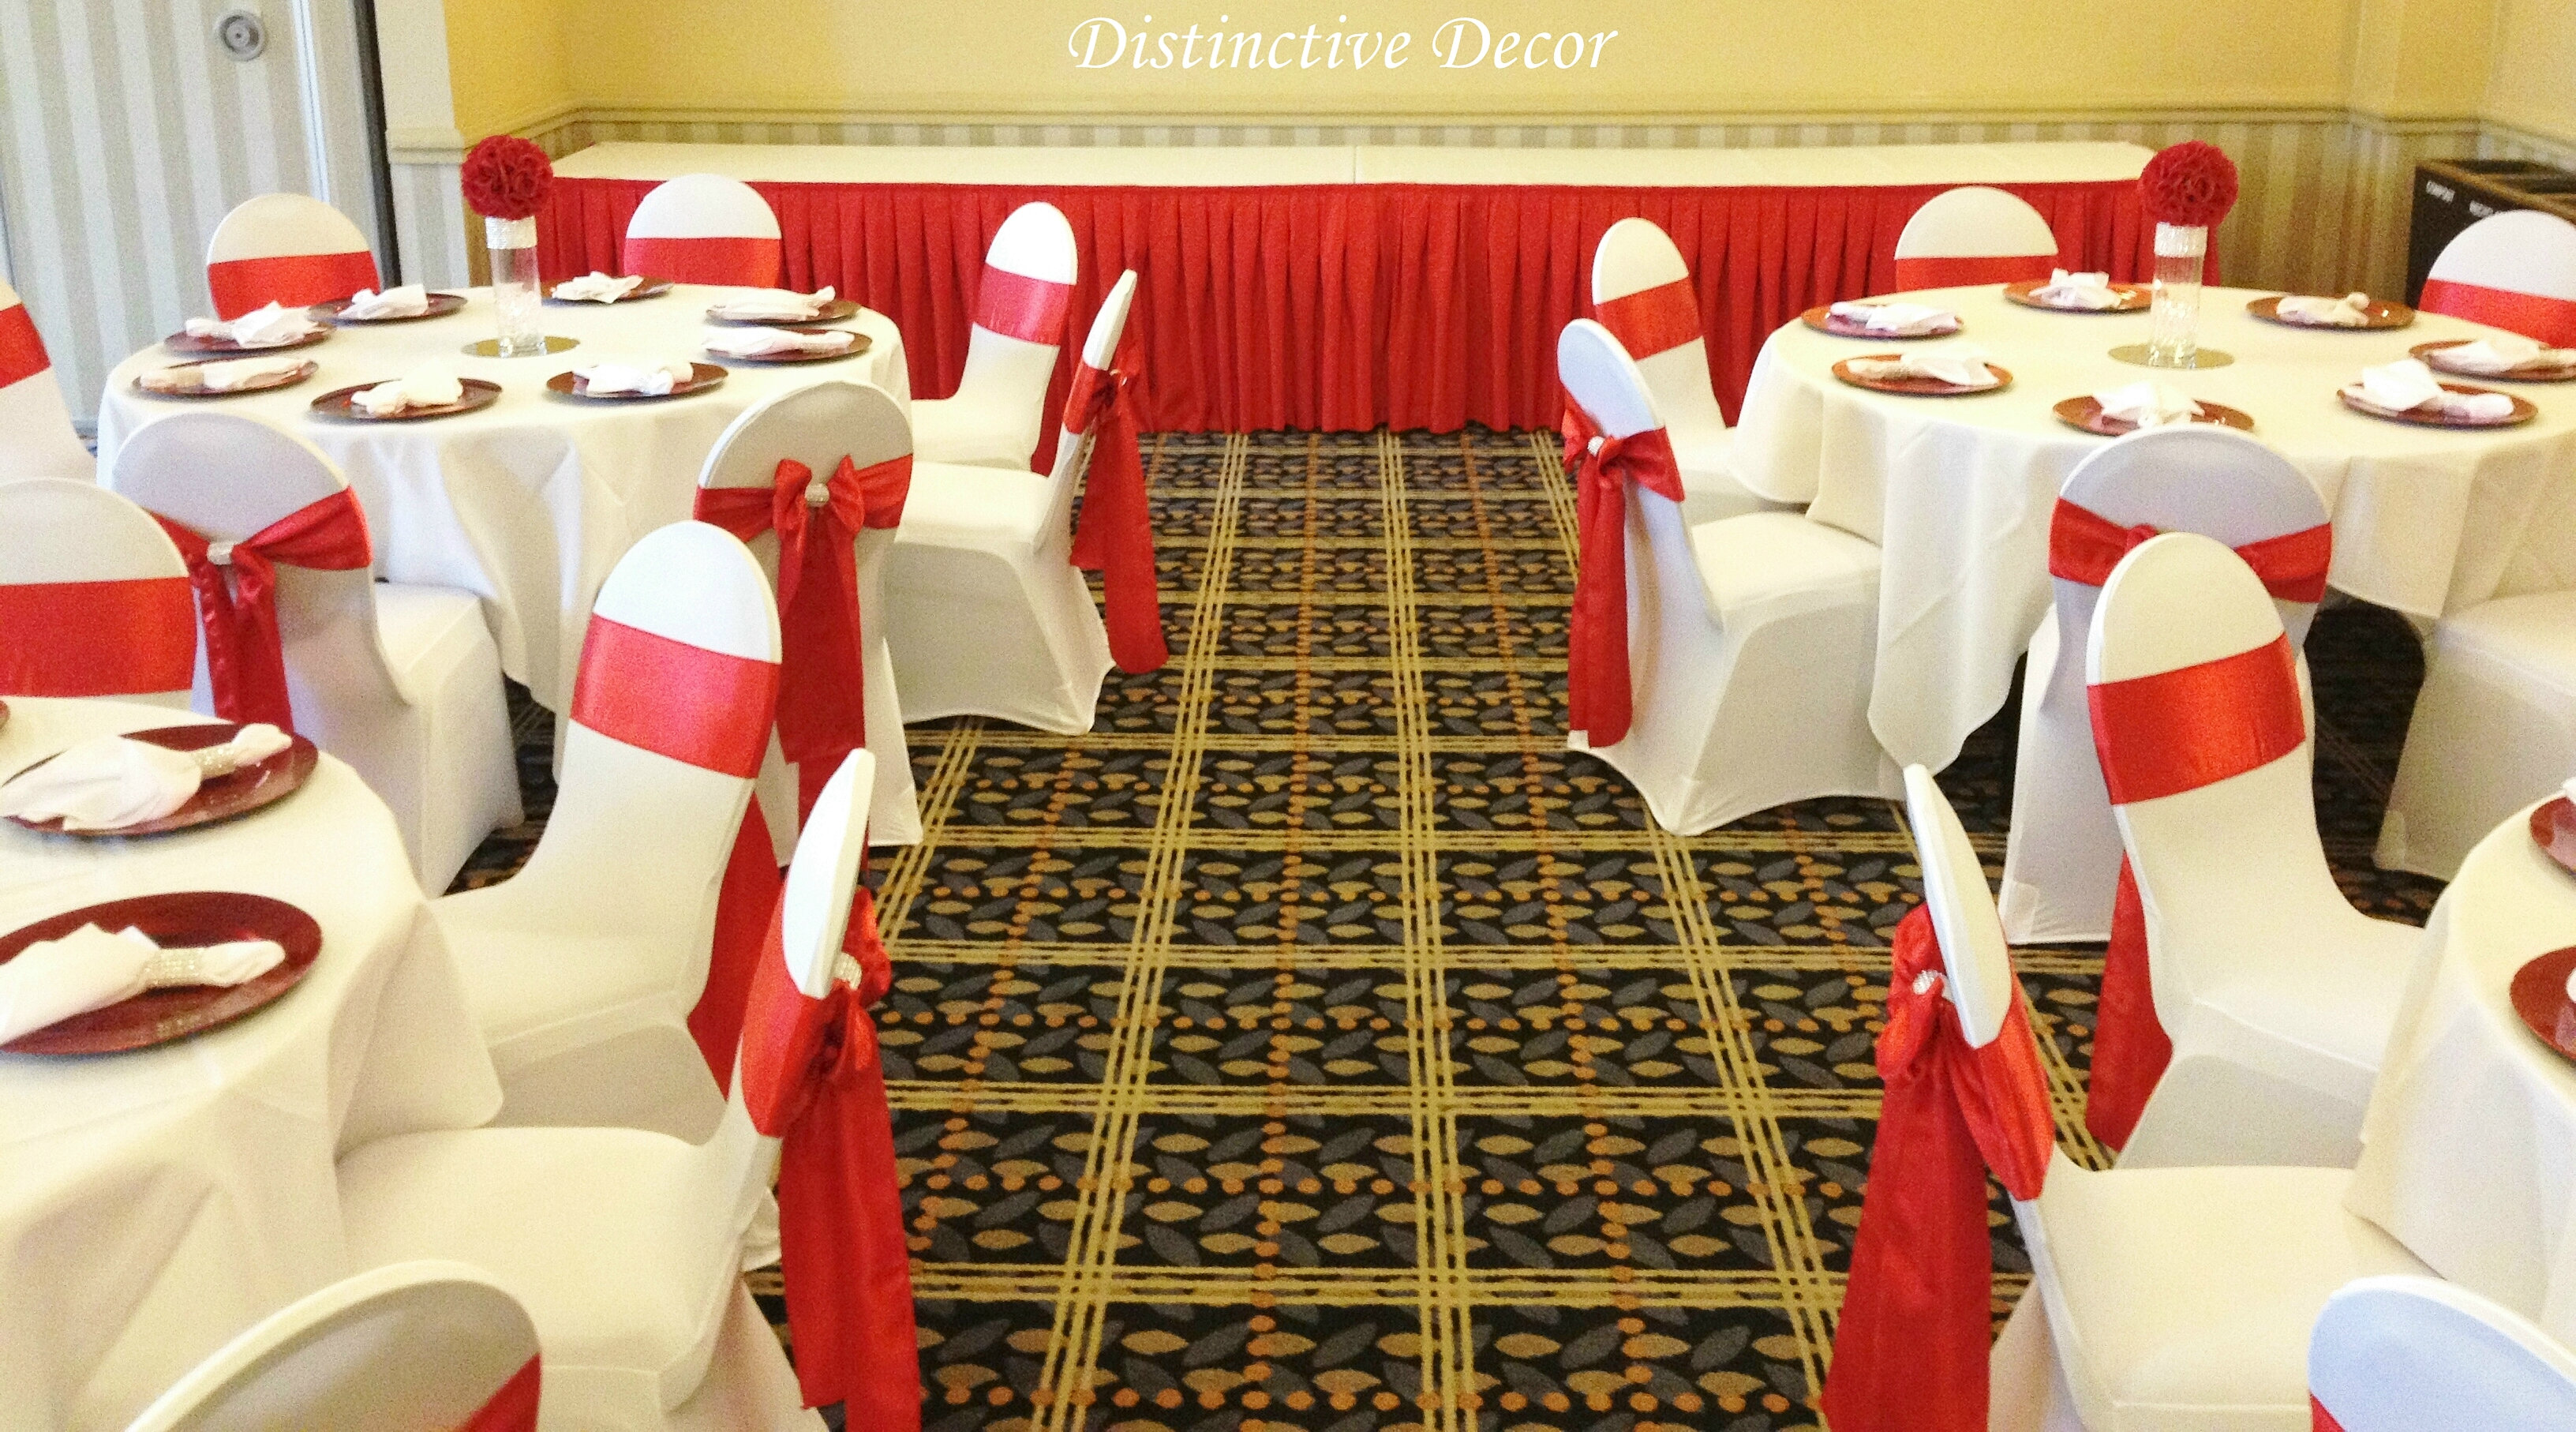 chair cover rentals boston ma chairs under 50 2 distinctive decor and celebrity events home ddr